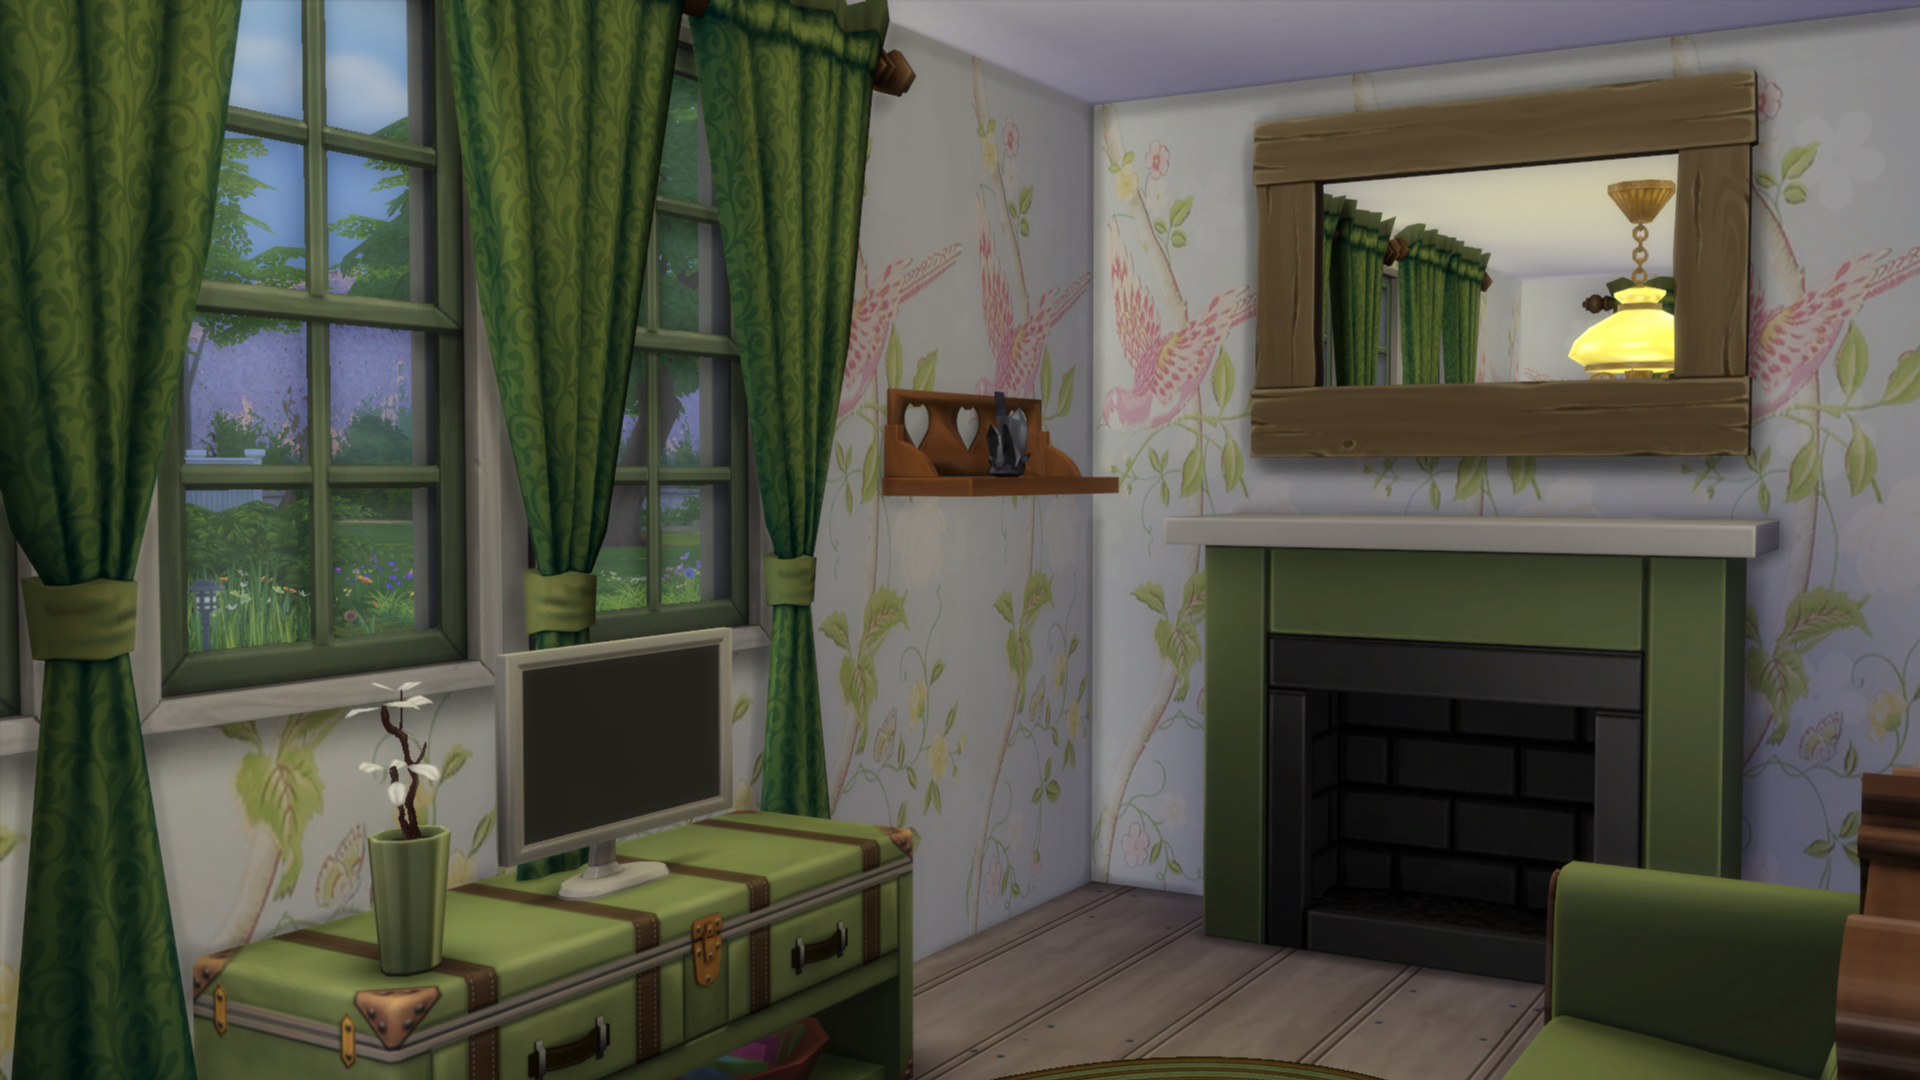 Click To Download Bring Some Cute Vintage Chic Your Sims Home With This Summer Palace Wallpaper From Laura Ashley